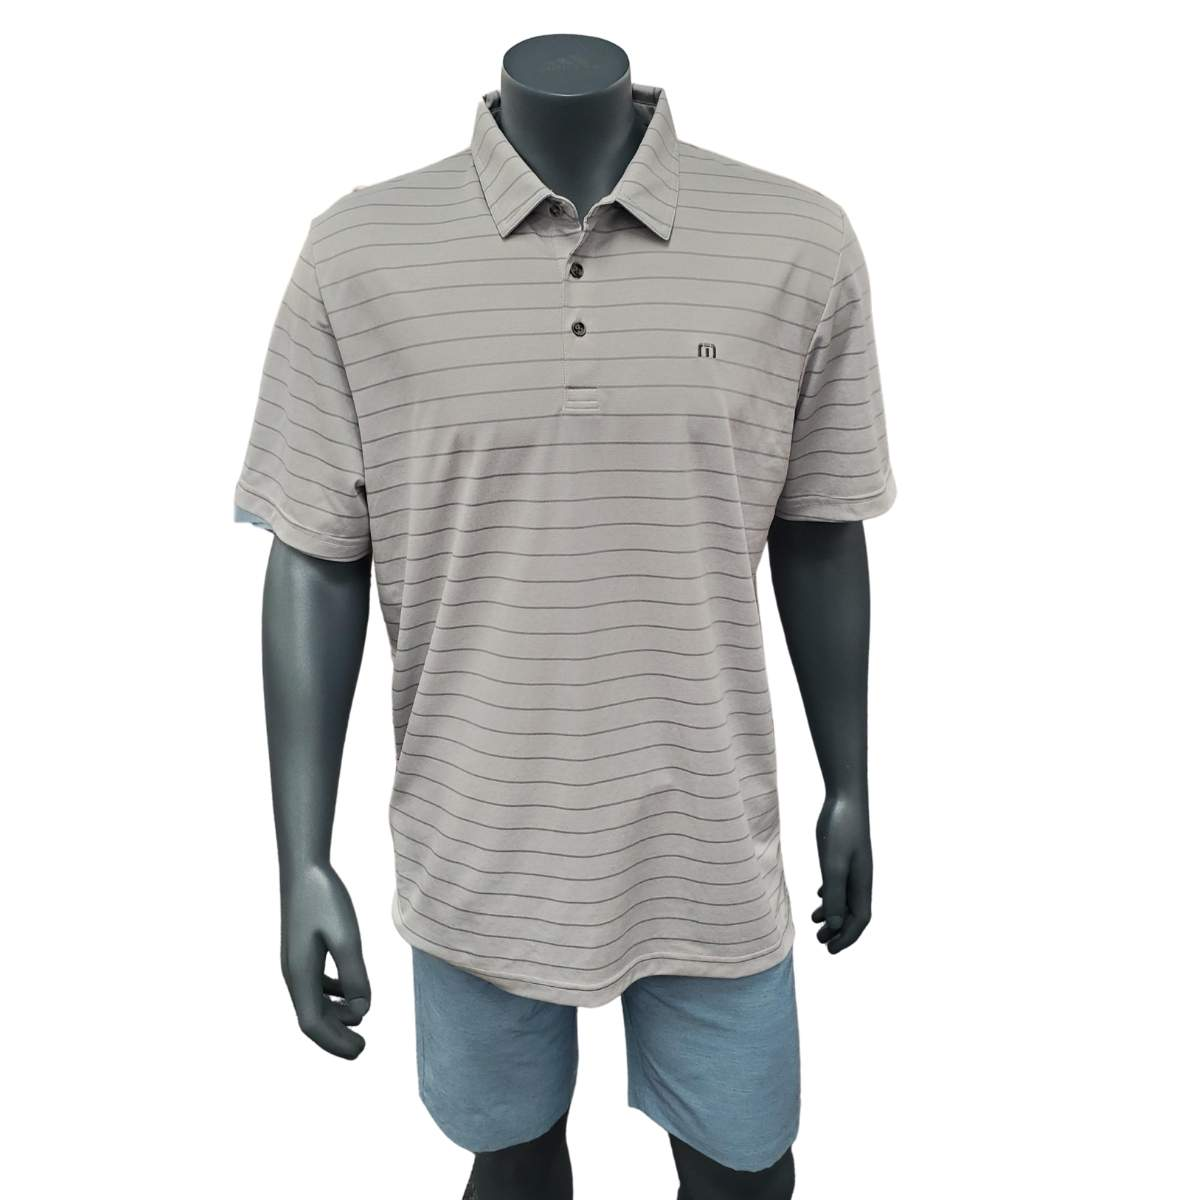 TravisMathew Marini 2.0 Polo